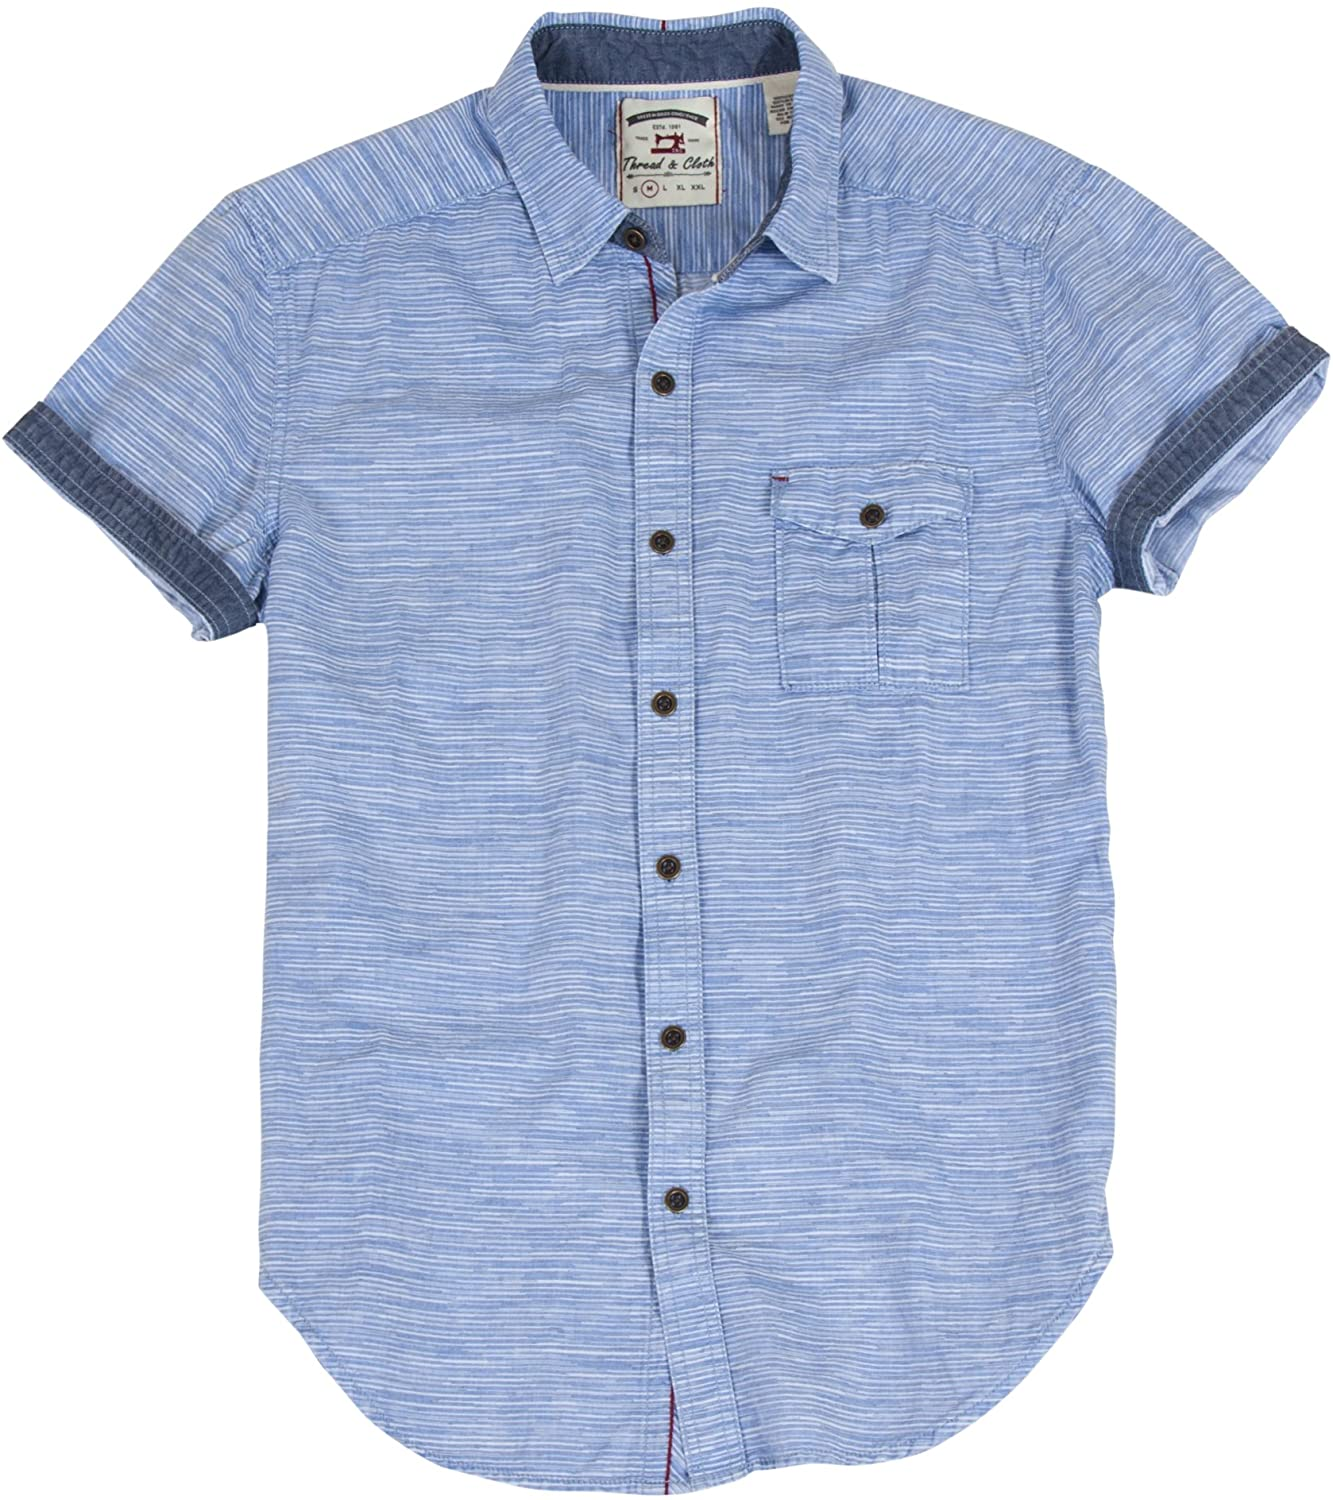 Thread & Cloth Men's Acid Washed Variegated Horizontal Stripe Woven Shirt